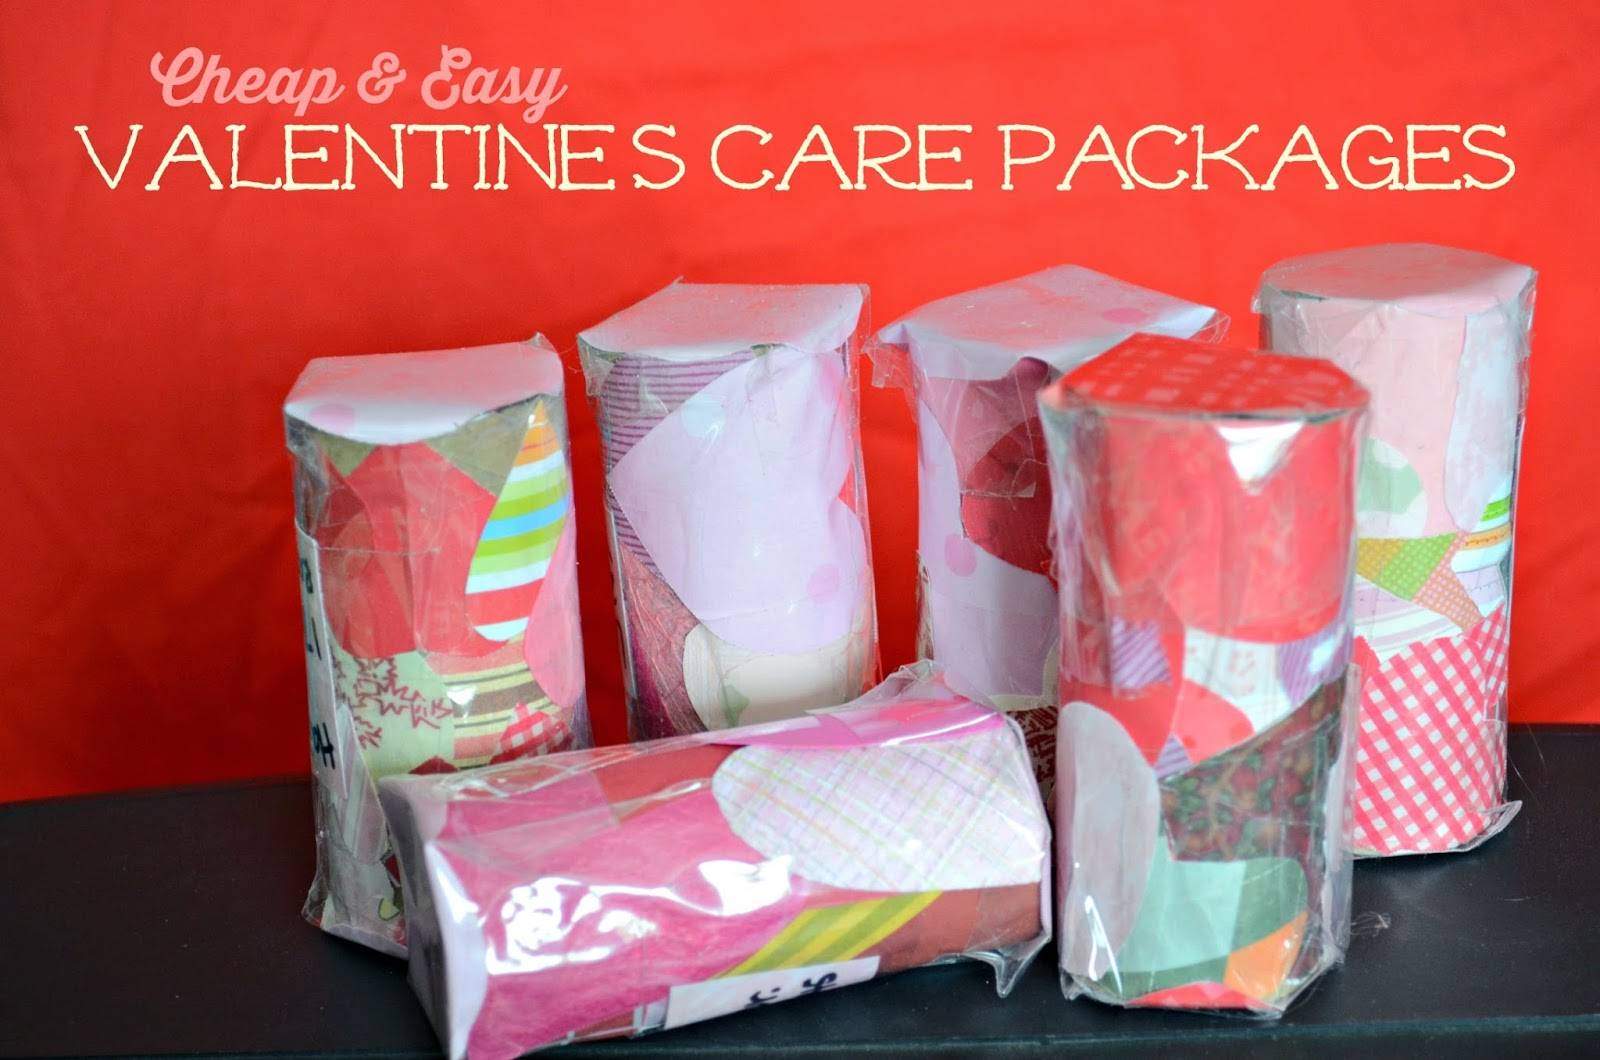 Cheap & Easy Valentines Care Packages